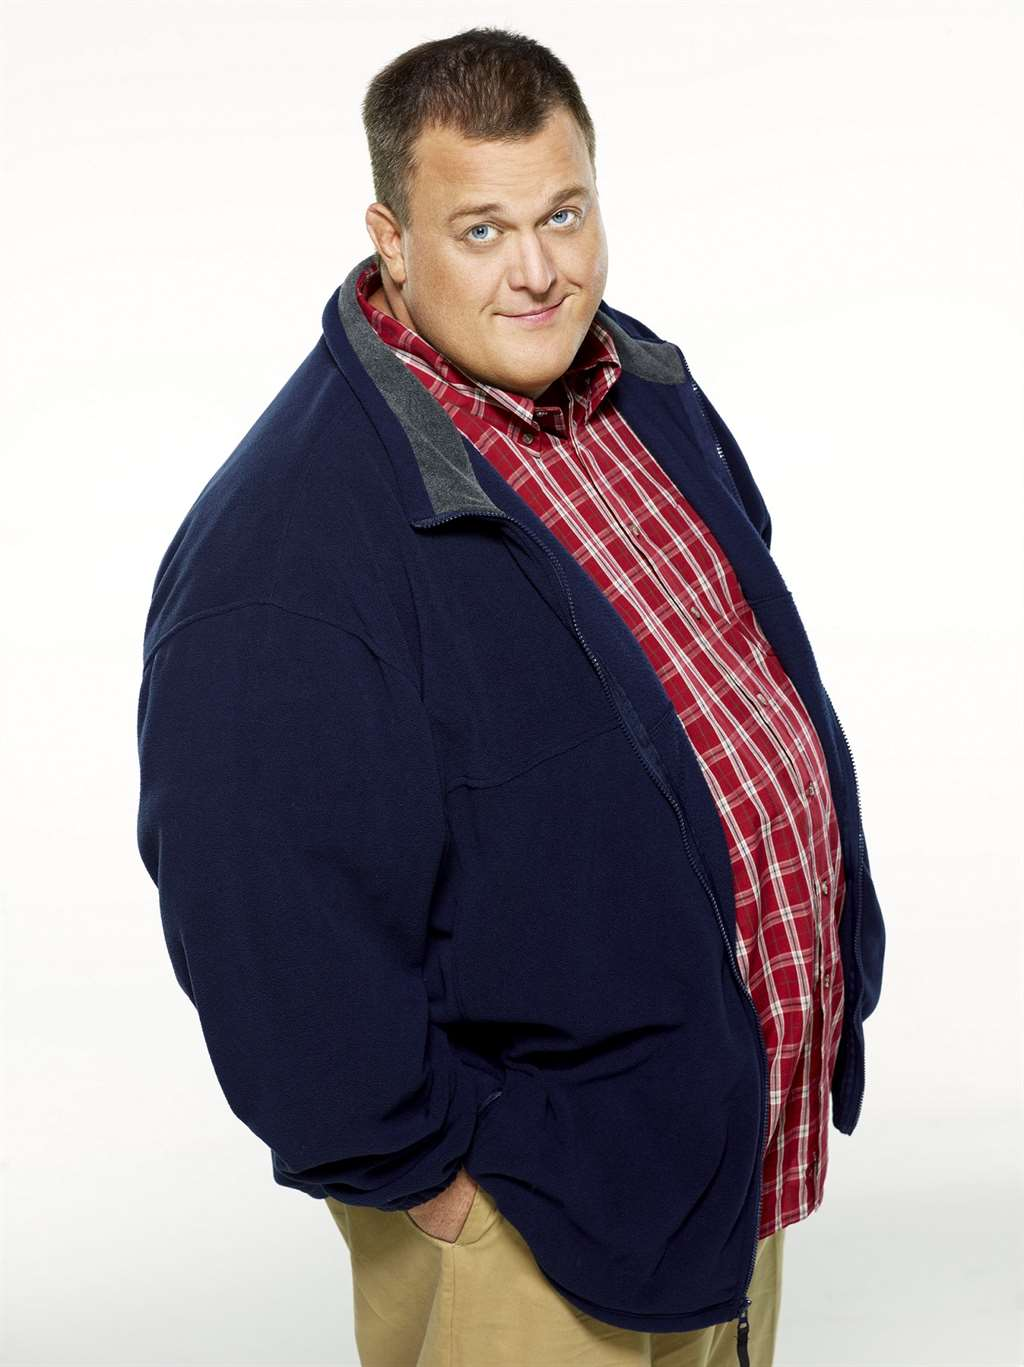 mike_billy_gardell